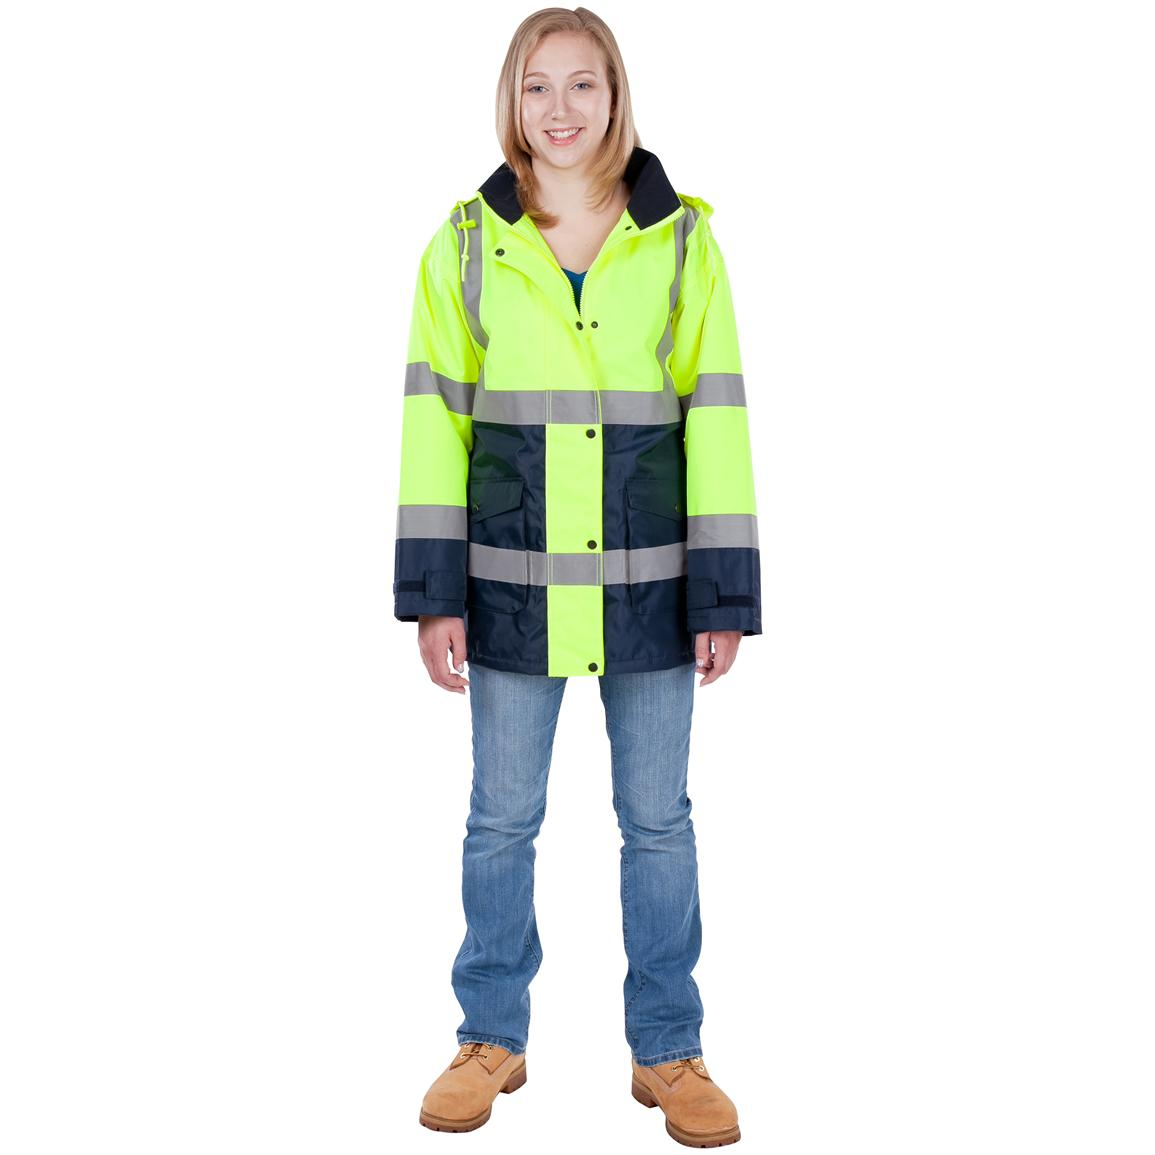 Women's Utility Pro Wear High Visibility Jacket, Hi Vis Yellow / Navy